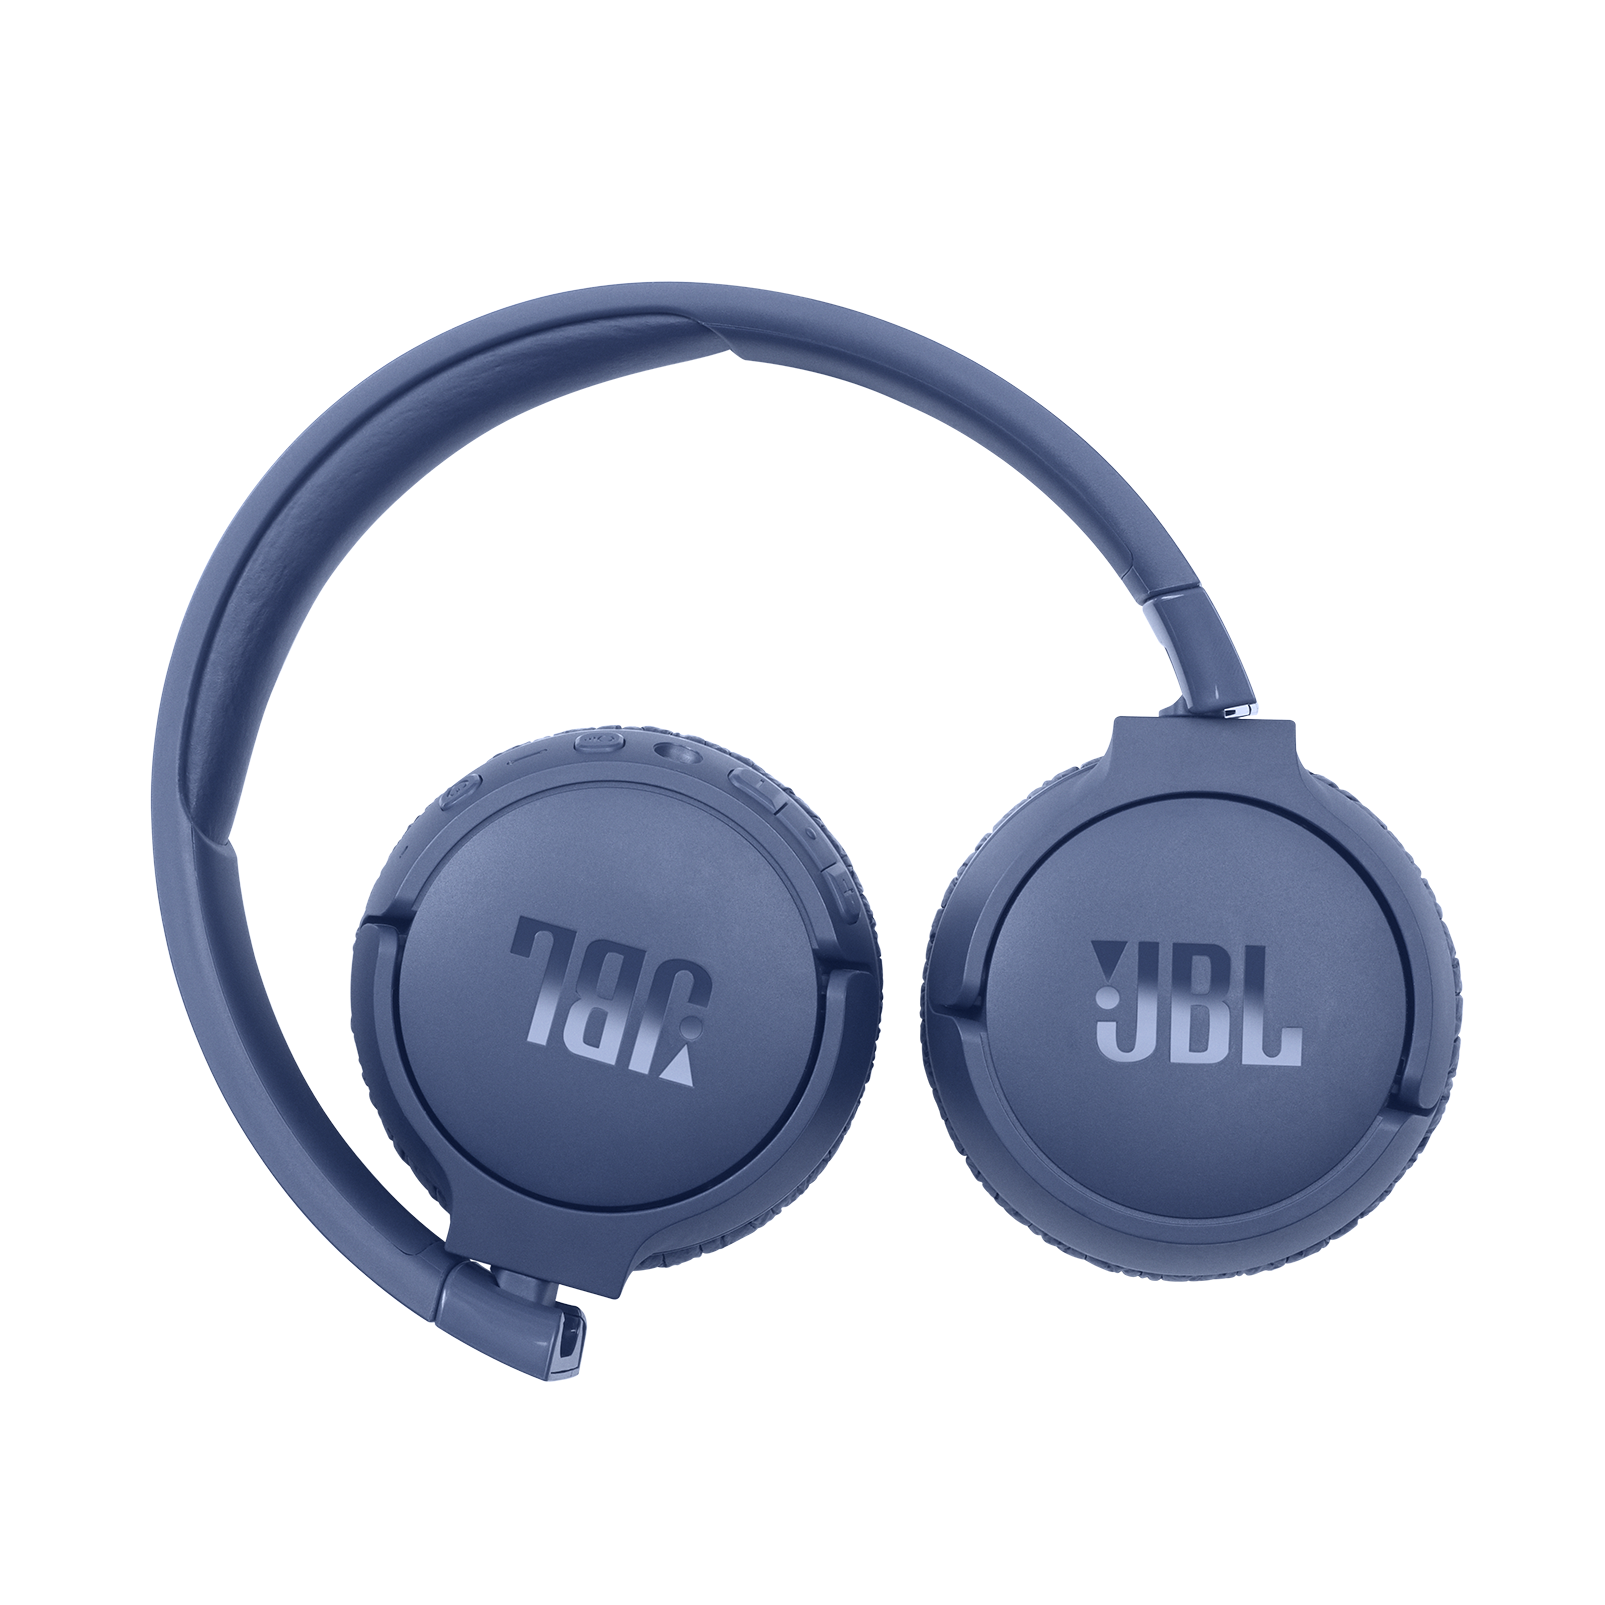 JBL Tune 660NC - Blue - Wireless, on-ear, active noise-cancelling headphones. - Detailshot 2